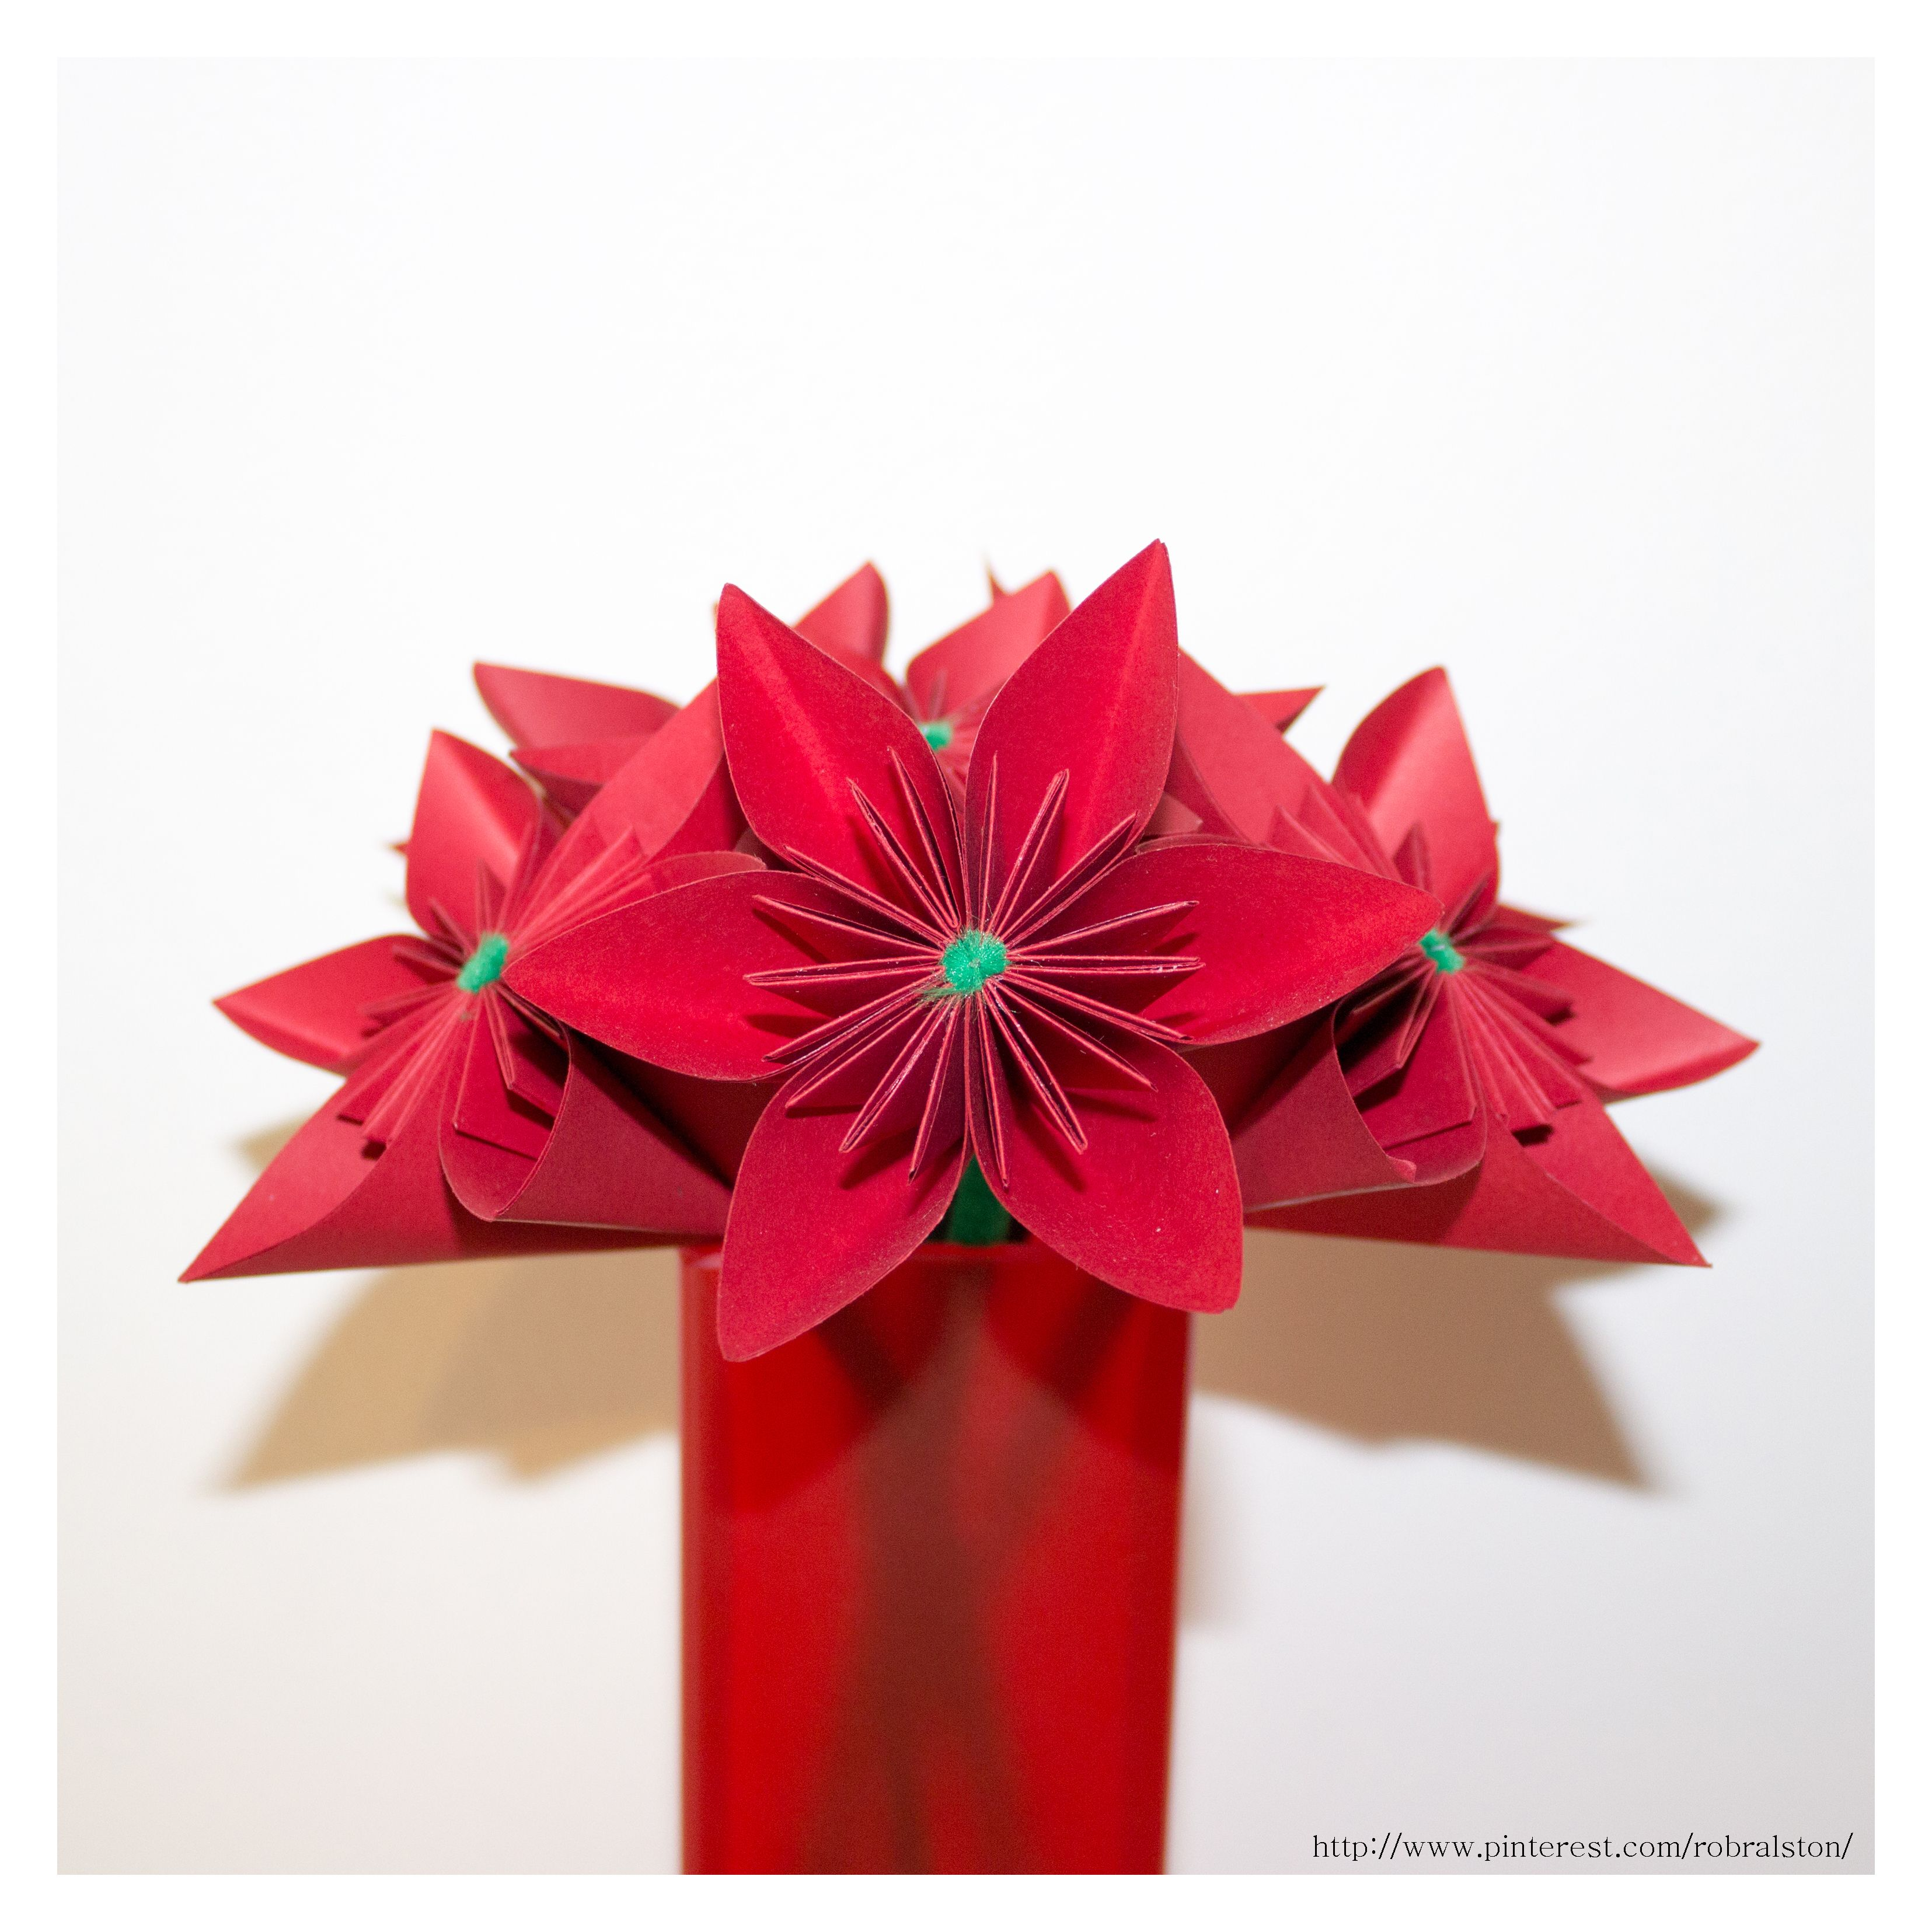 These All Red Origami Flowers Are A Six Petal Version Of The